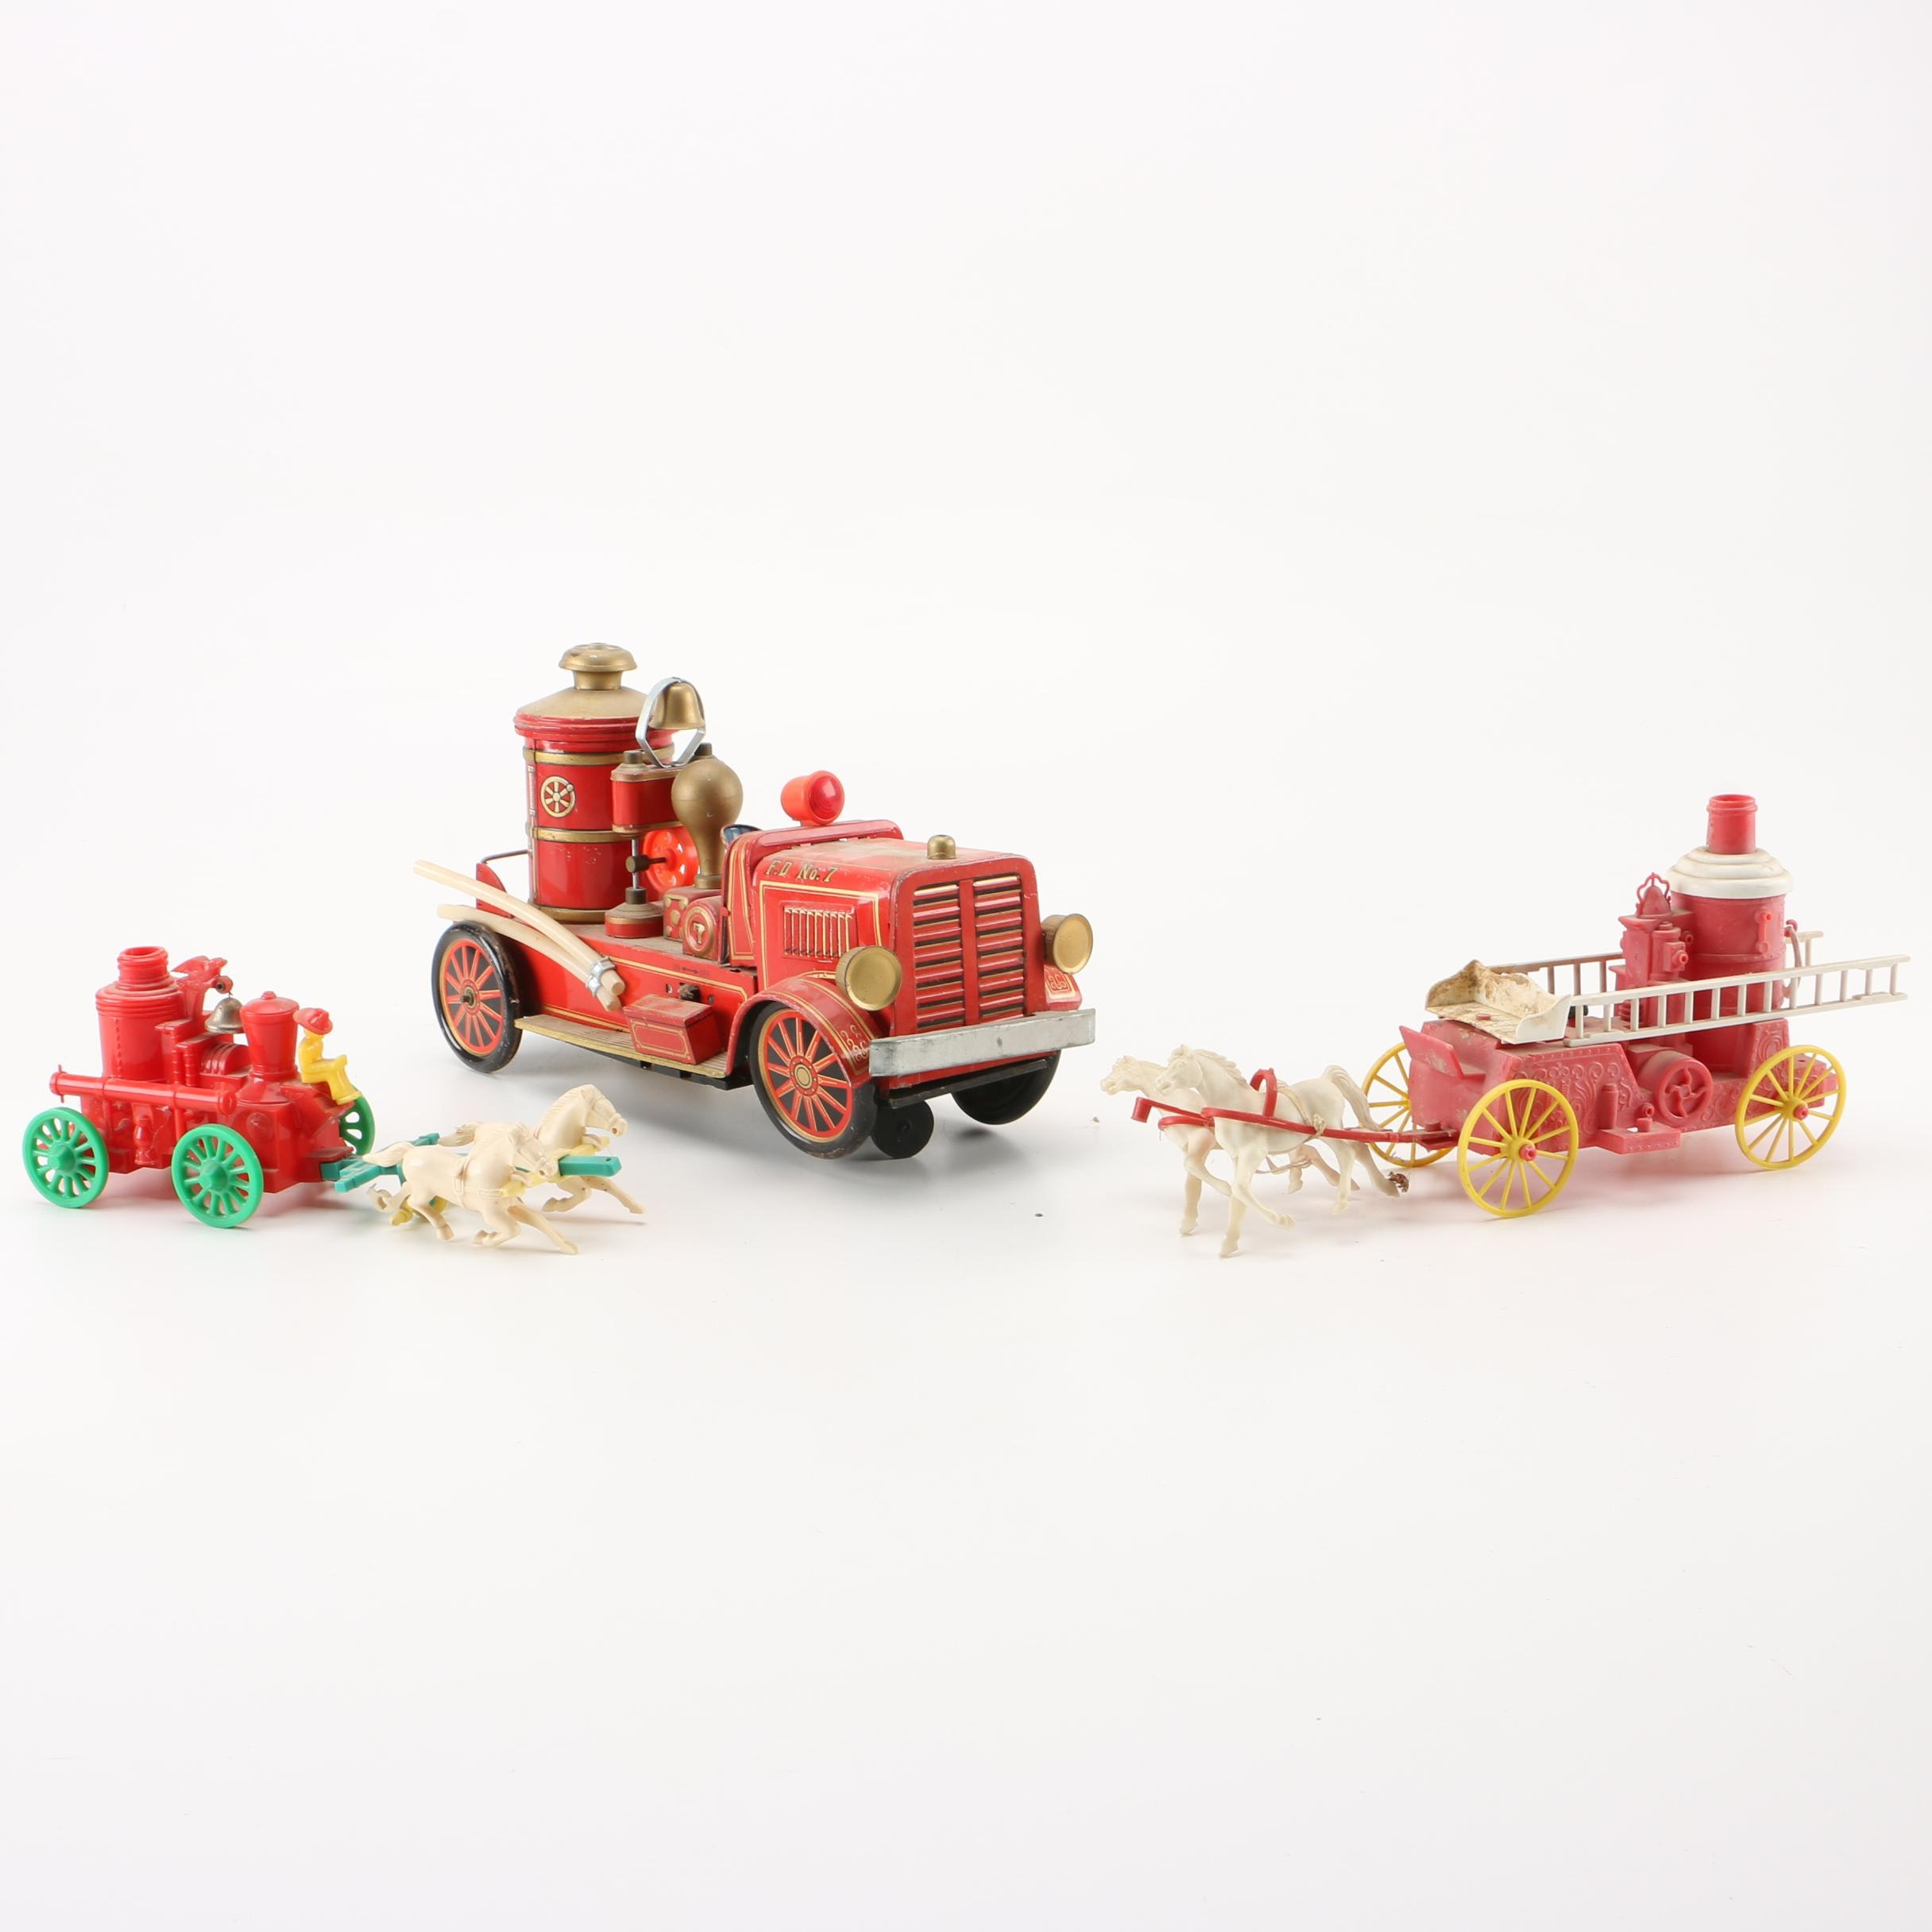 Vintage Toy Antique Fire Engines